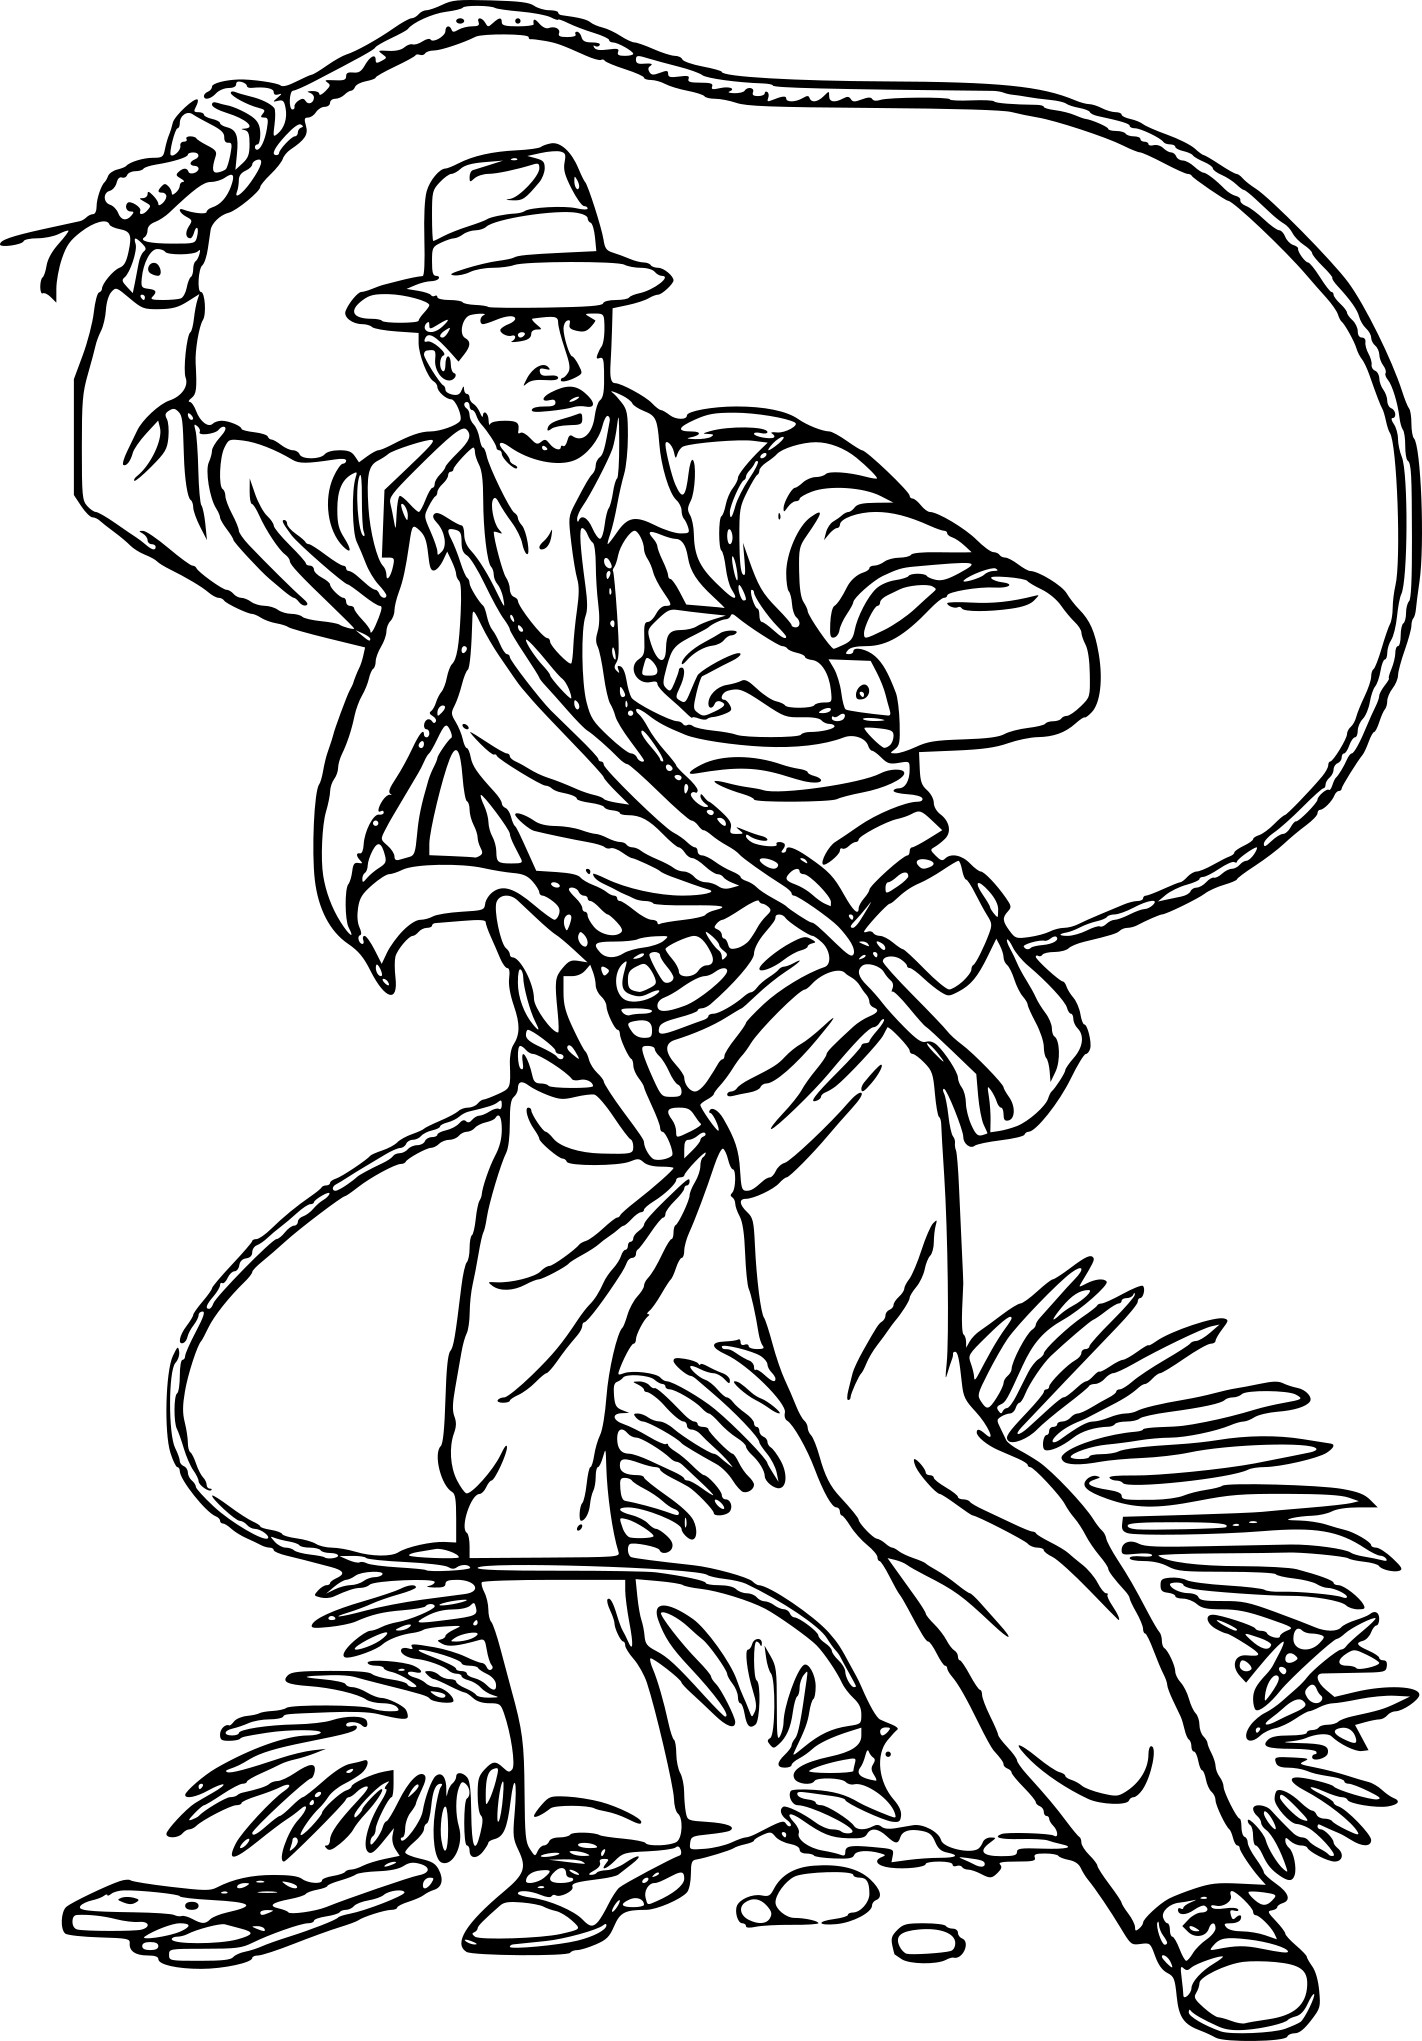 Coloriage personnage indiana jones imprimer sur - Coloriage indiana jones ...